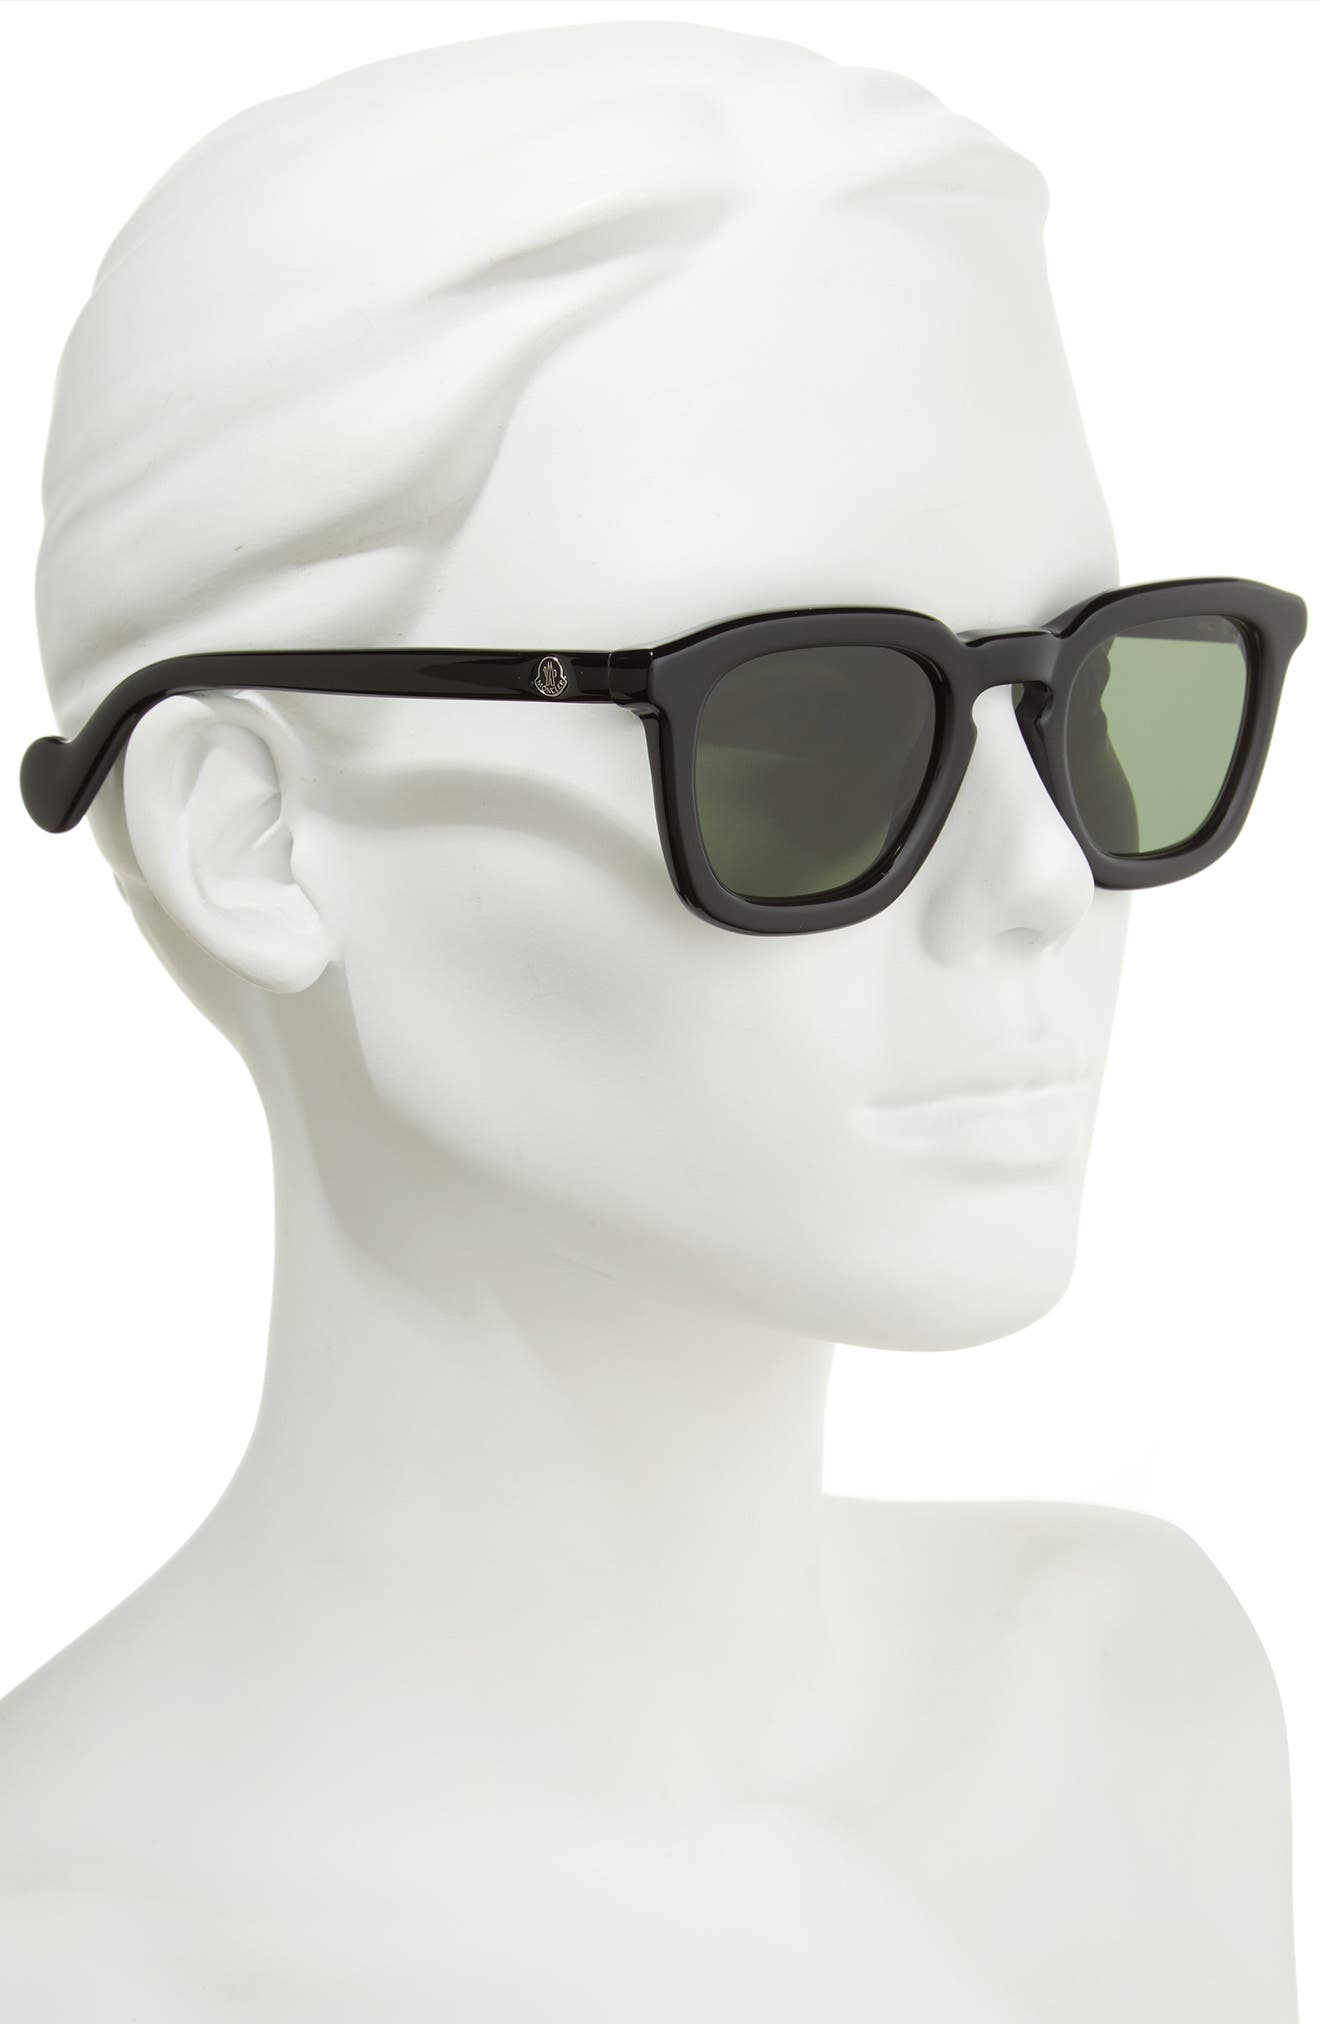 50mm Sunglasses,                             Alternate thumbnail 2, color,                             001